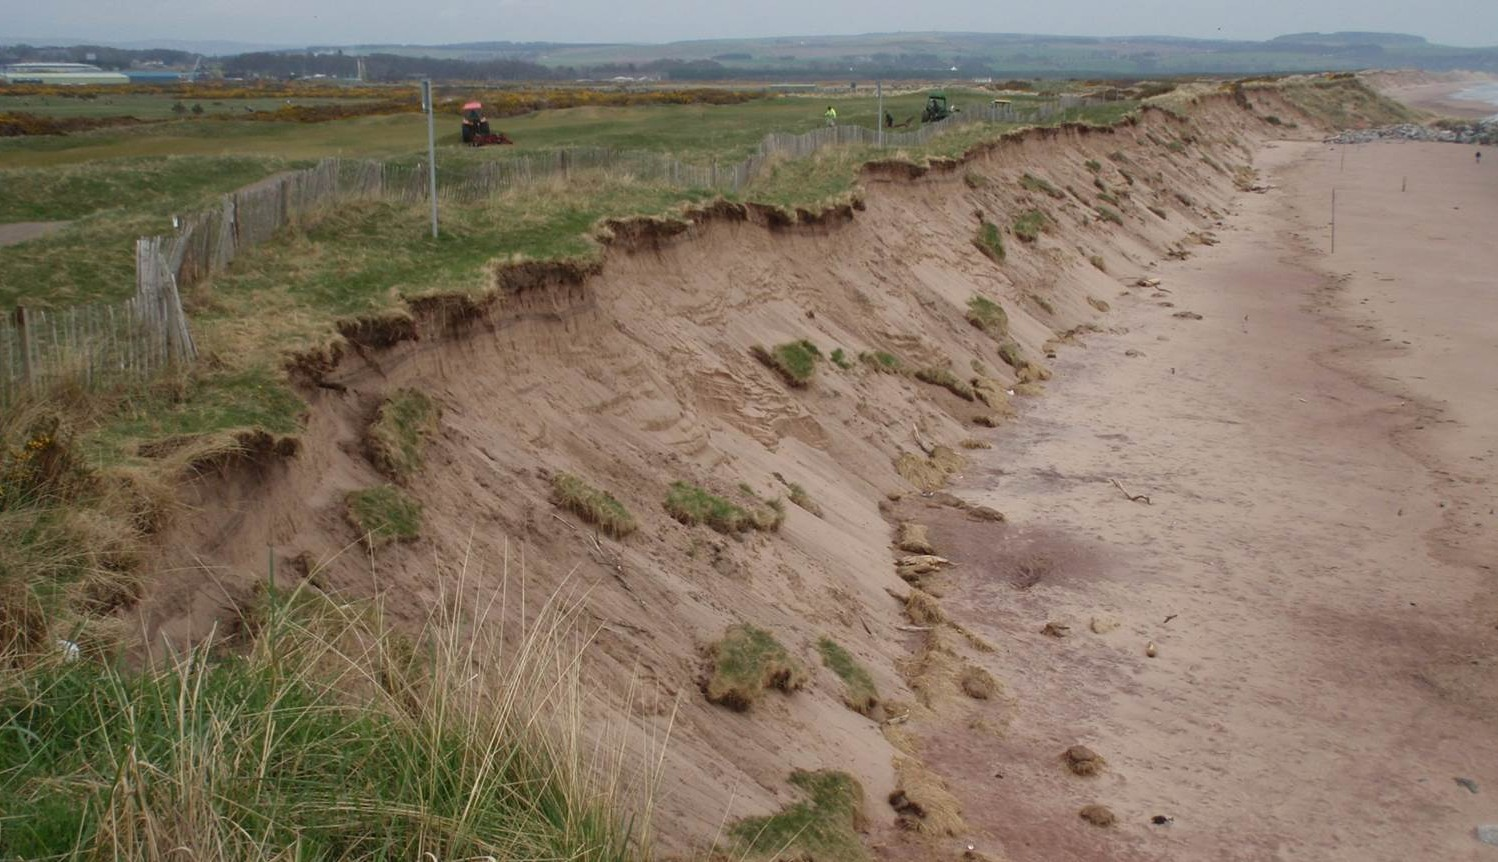 The erosion at Montrose threatens the golf course's long-term future.